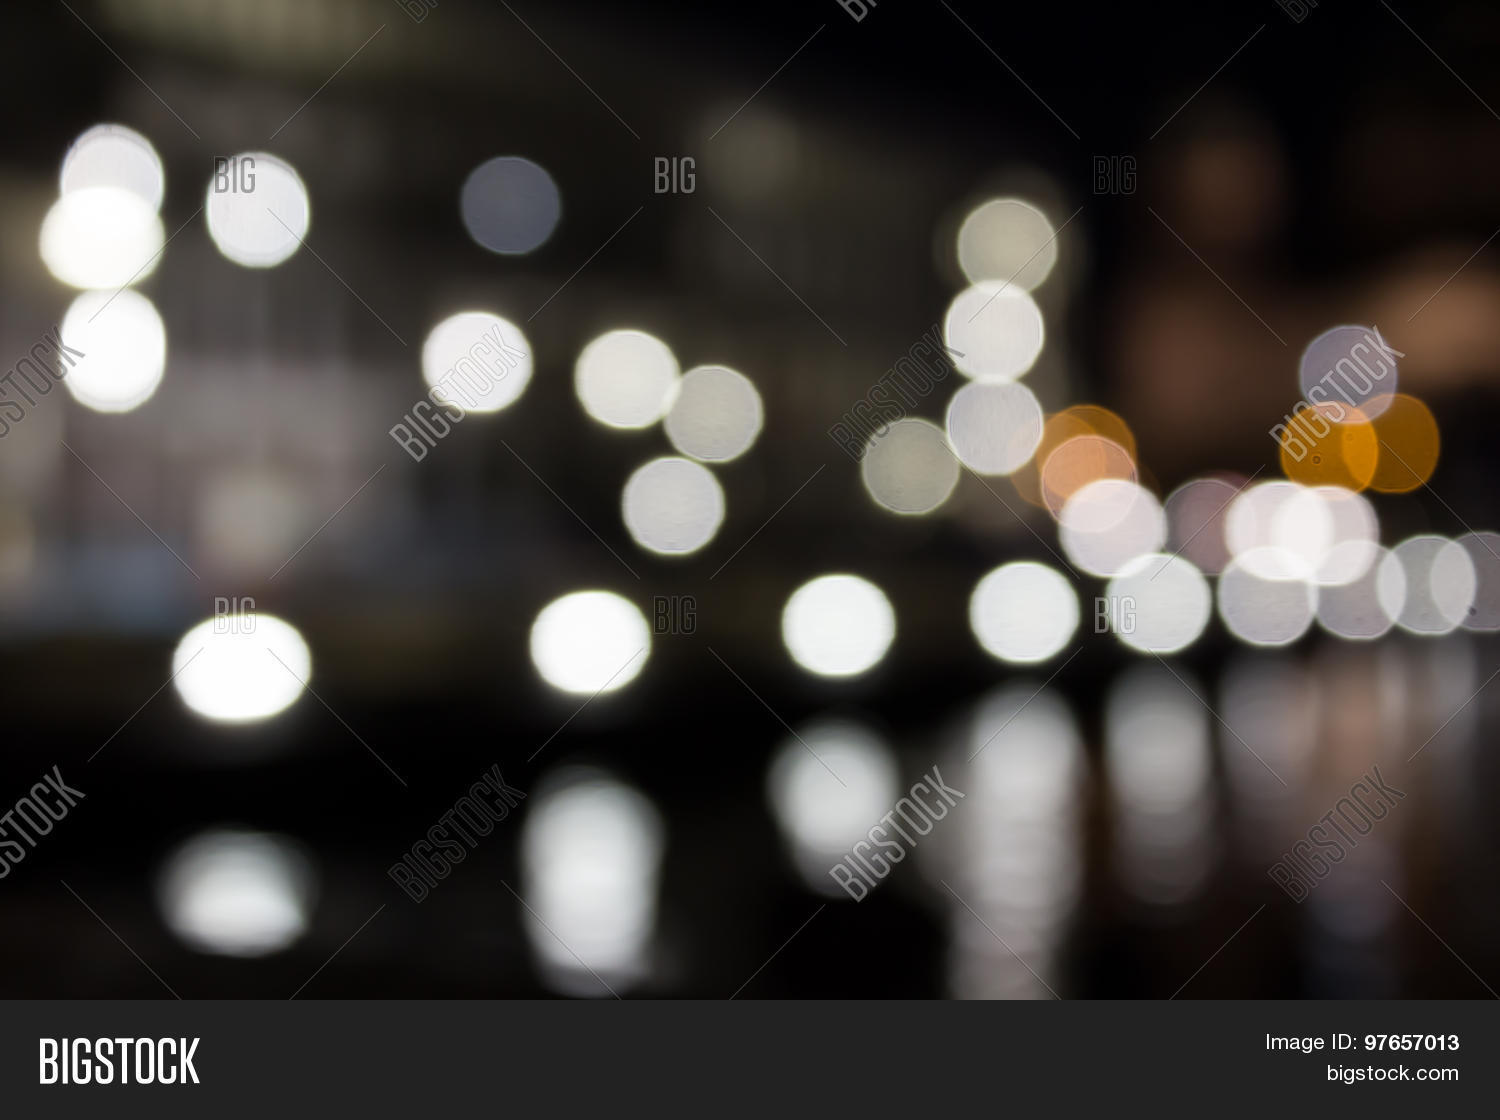 City Night, Blurred Image & Photo (Free Trial) | Bigstock